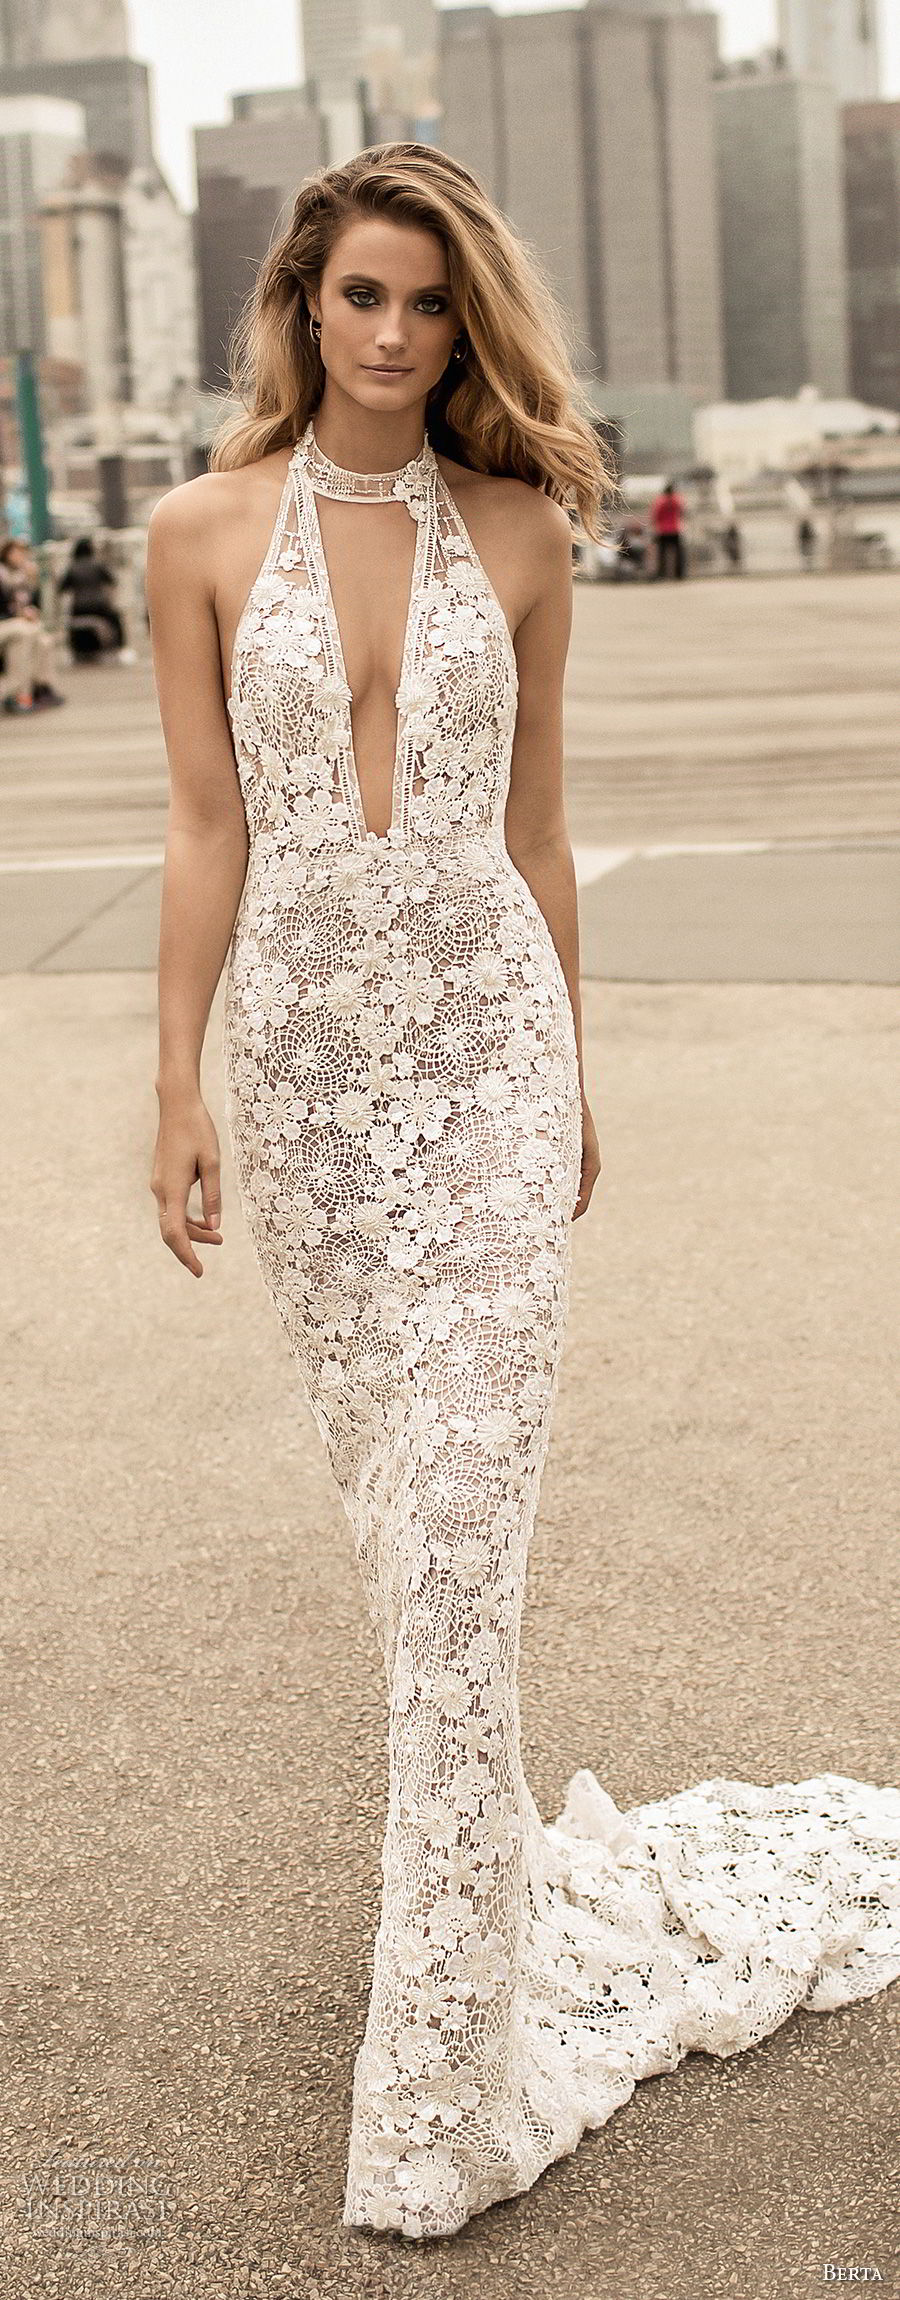 berta spring 2018 bridal sleeveless halter neck deep plunging v neck full embellishment elegant sexy sheath wedding dress open back medium train (13) mv